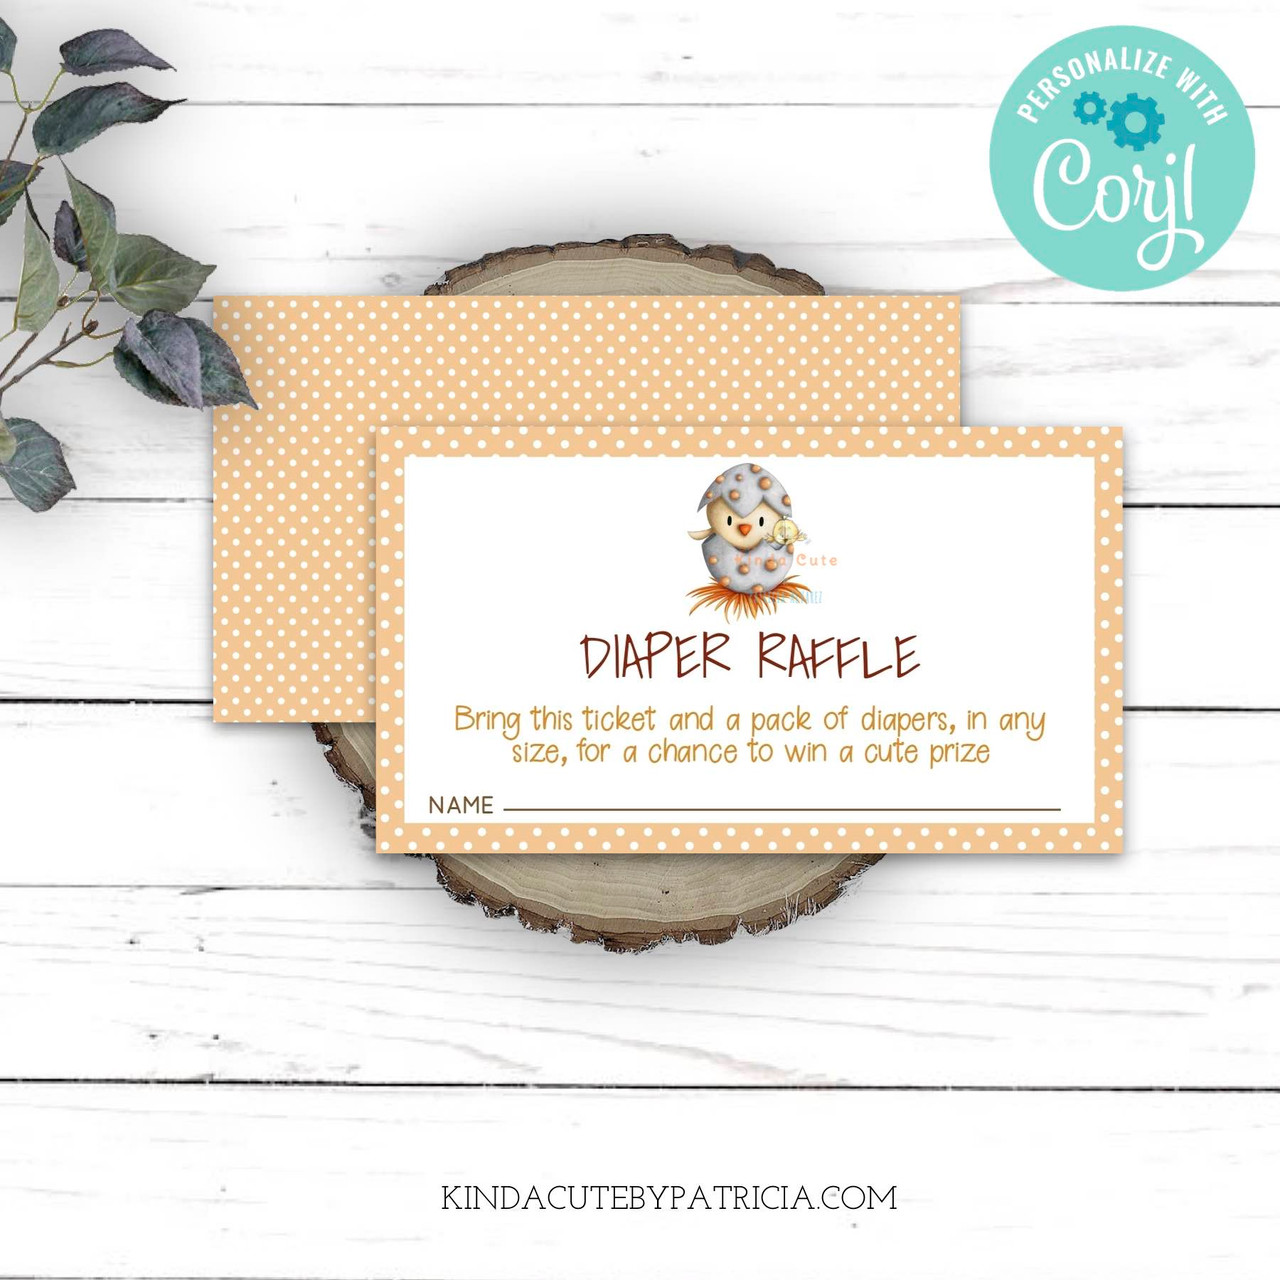 It is a graphic of Free Printable Diaper Raffle Ticket Template Download inside 3 digit